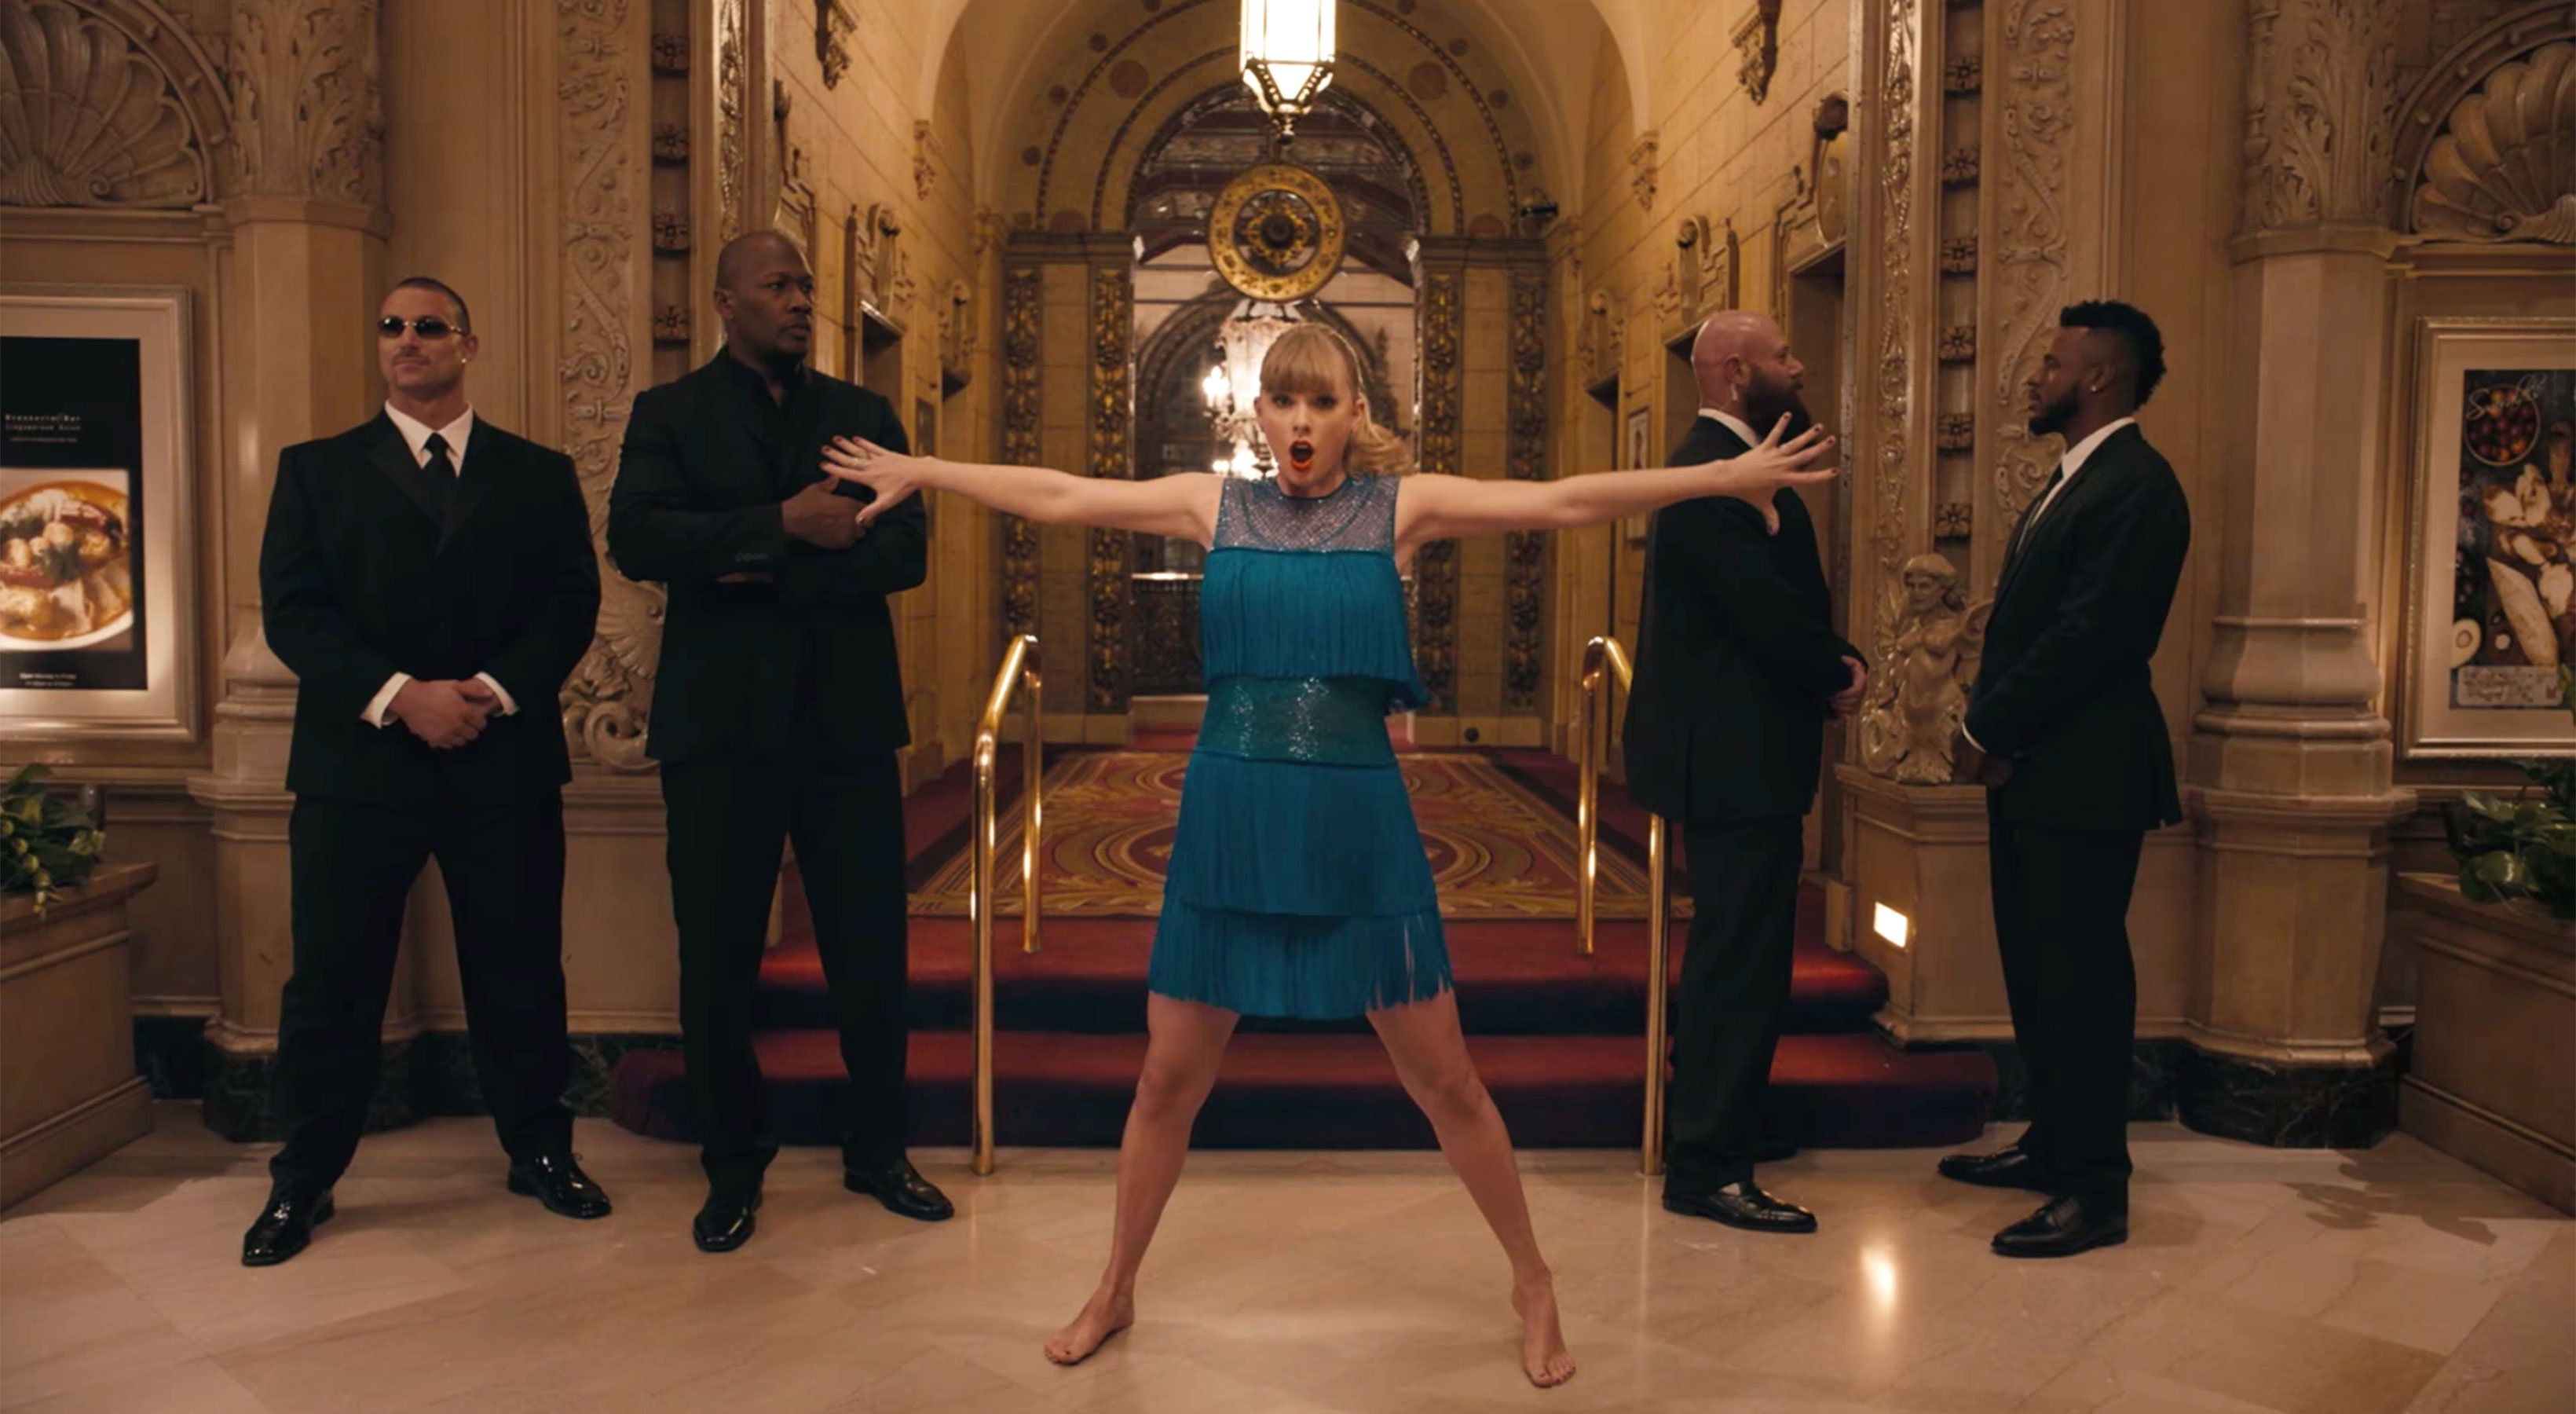 Taylor Swift video for Delicate drops